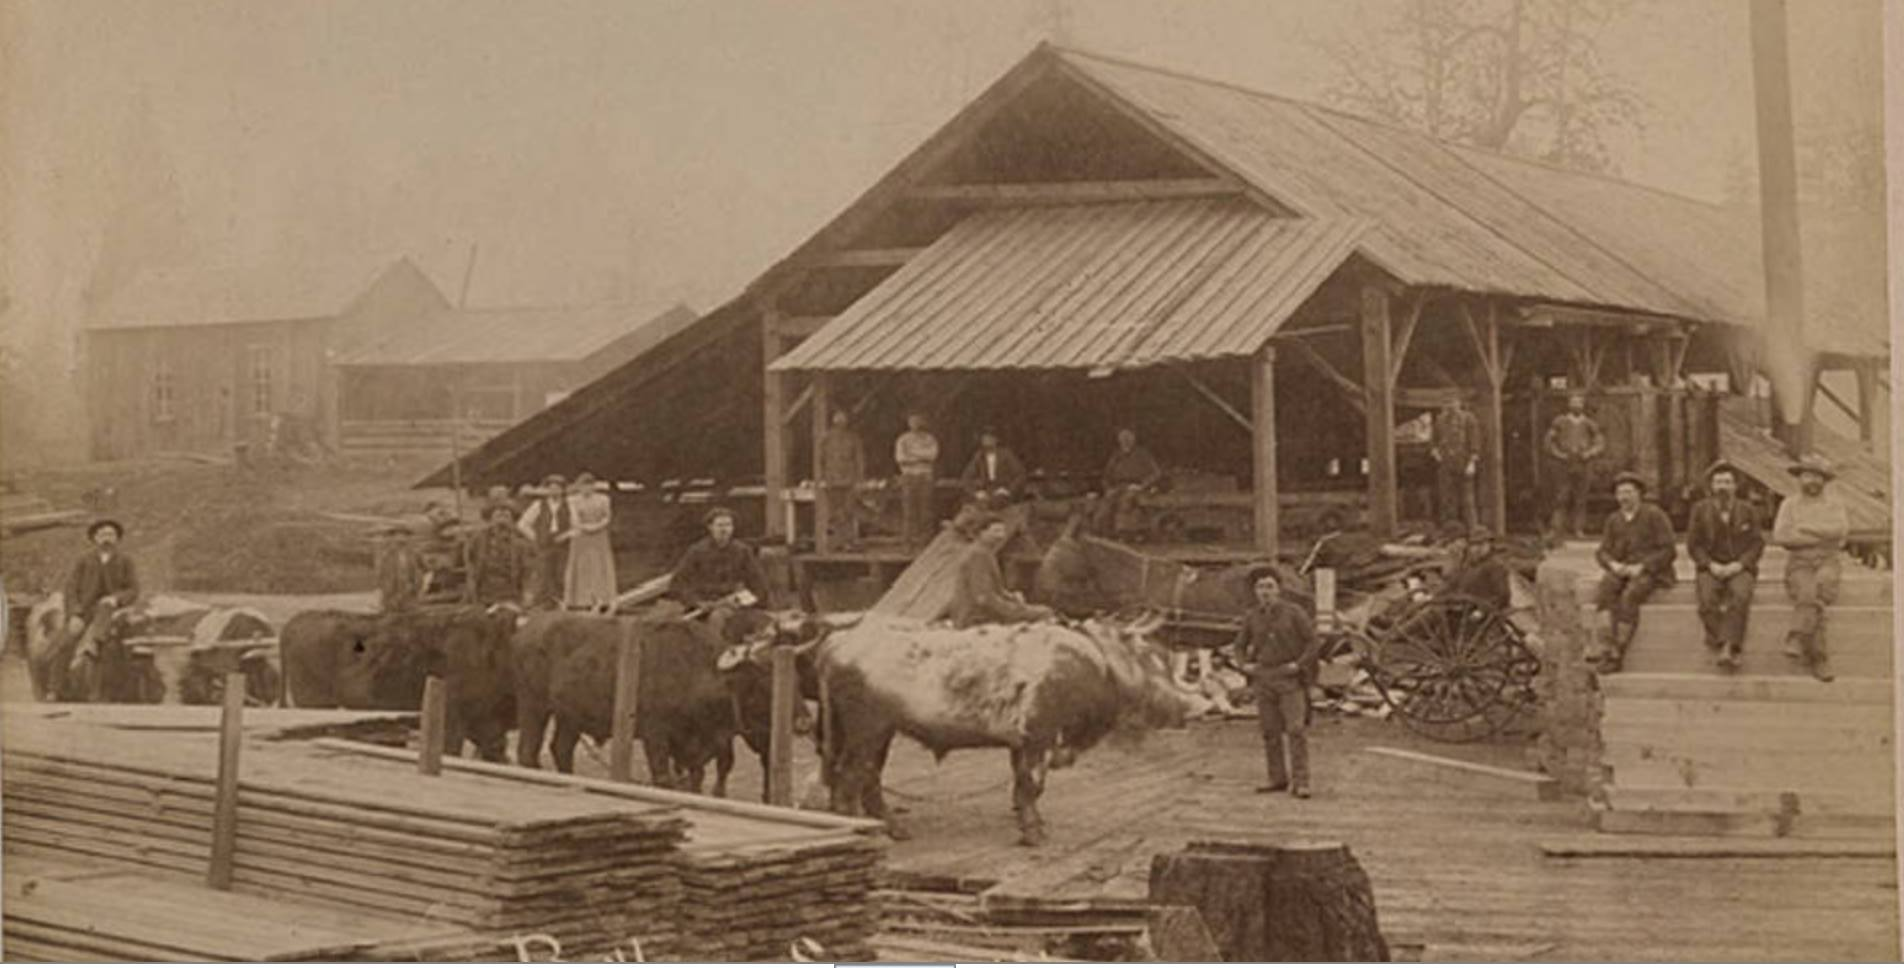 ISACC BUTLER HAD ONE OF THE FIRST SAW MILLS IN WASHINGTON COUNTY AND IN THE TUALATIN VALLEY WHICH WAS POWERED BY OXEN TO TURN THE SAW BLADES. THE LOCATION WAS REPORTED TO HAVE BEEN ALONG ROCK CREEK AT THE SW CORNER OF WHAT BECOME THE CITY OF ORENCO. PICTURE COURTESY OF THE WASHINGTON COUNTY MUSEUM.